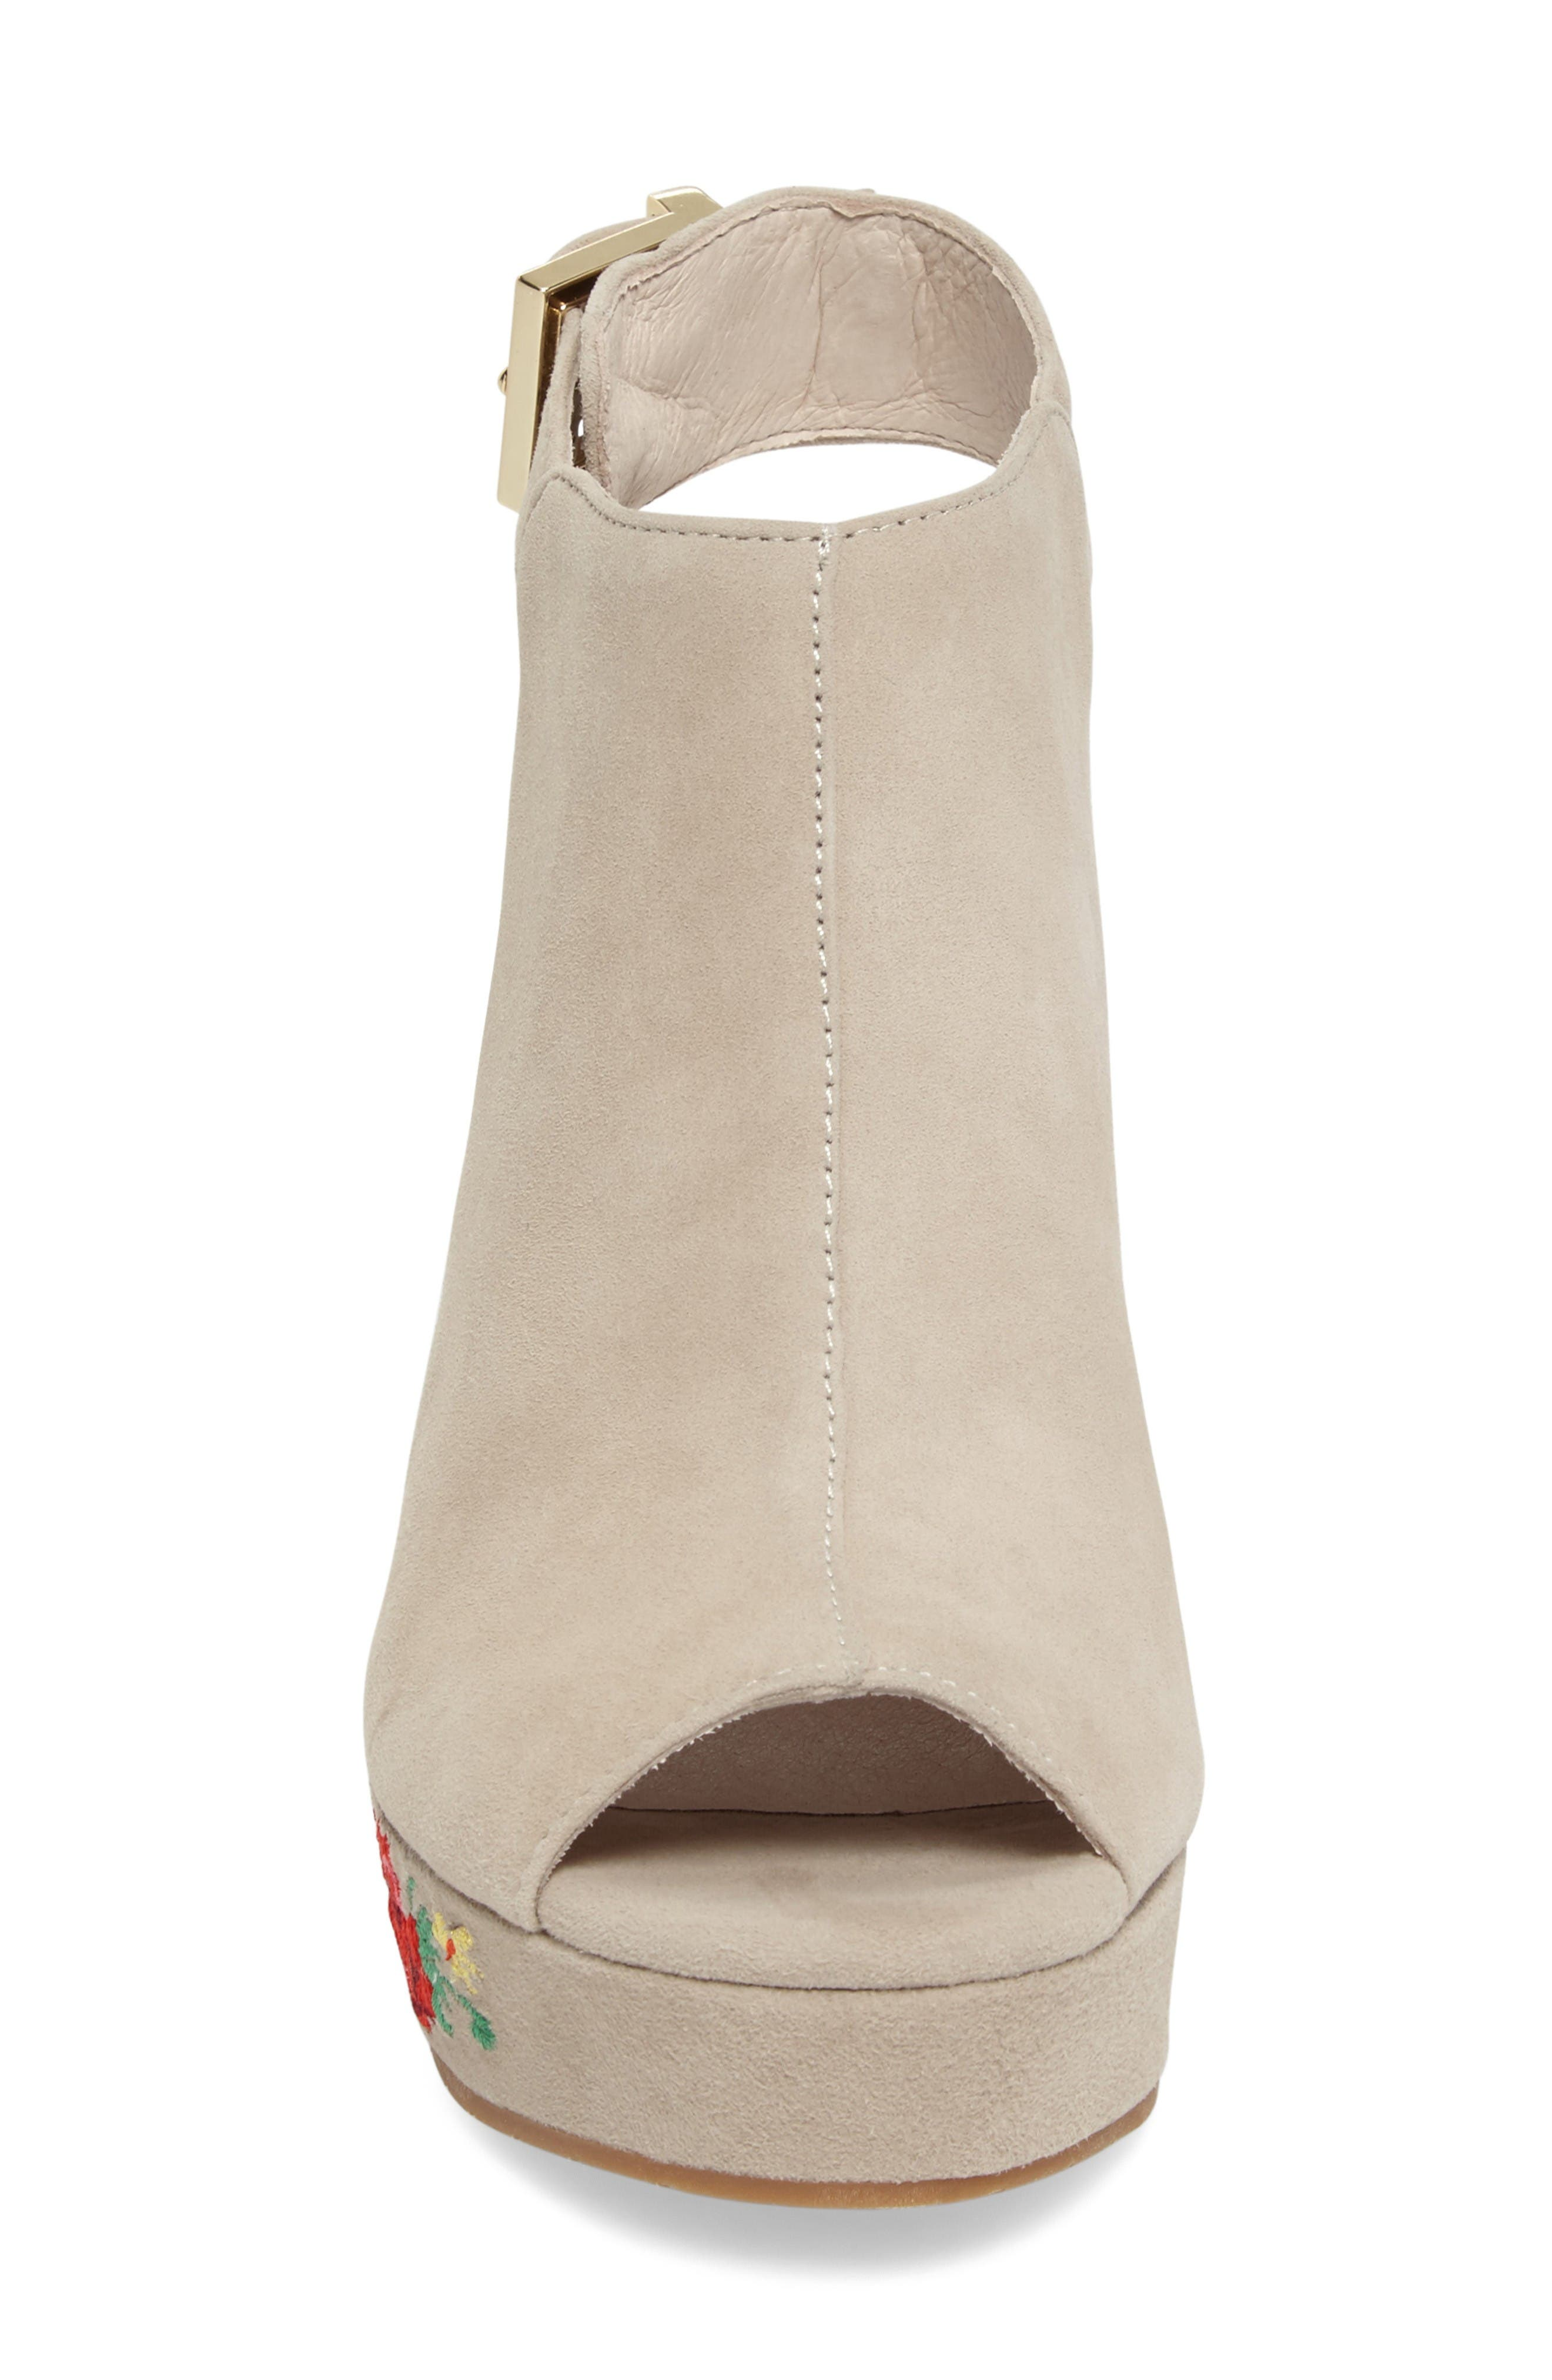 Olani Embroidered Wedge Sandal,                             Alternate thumbnail 4, color,                             Taupe Suede